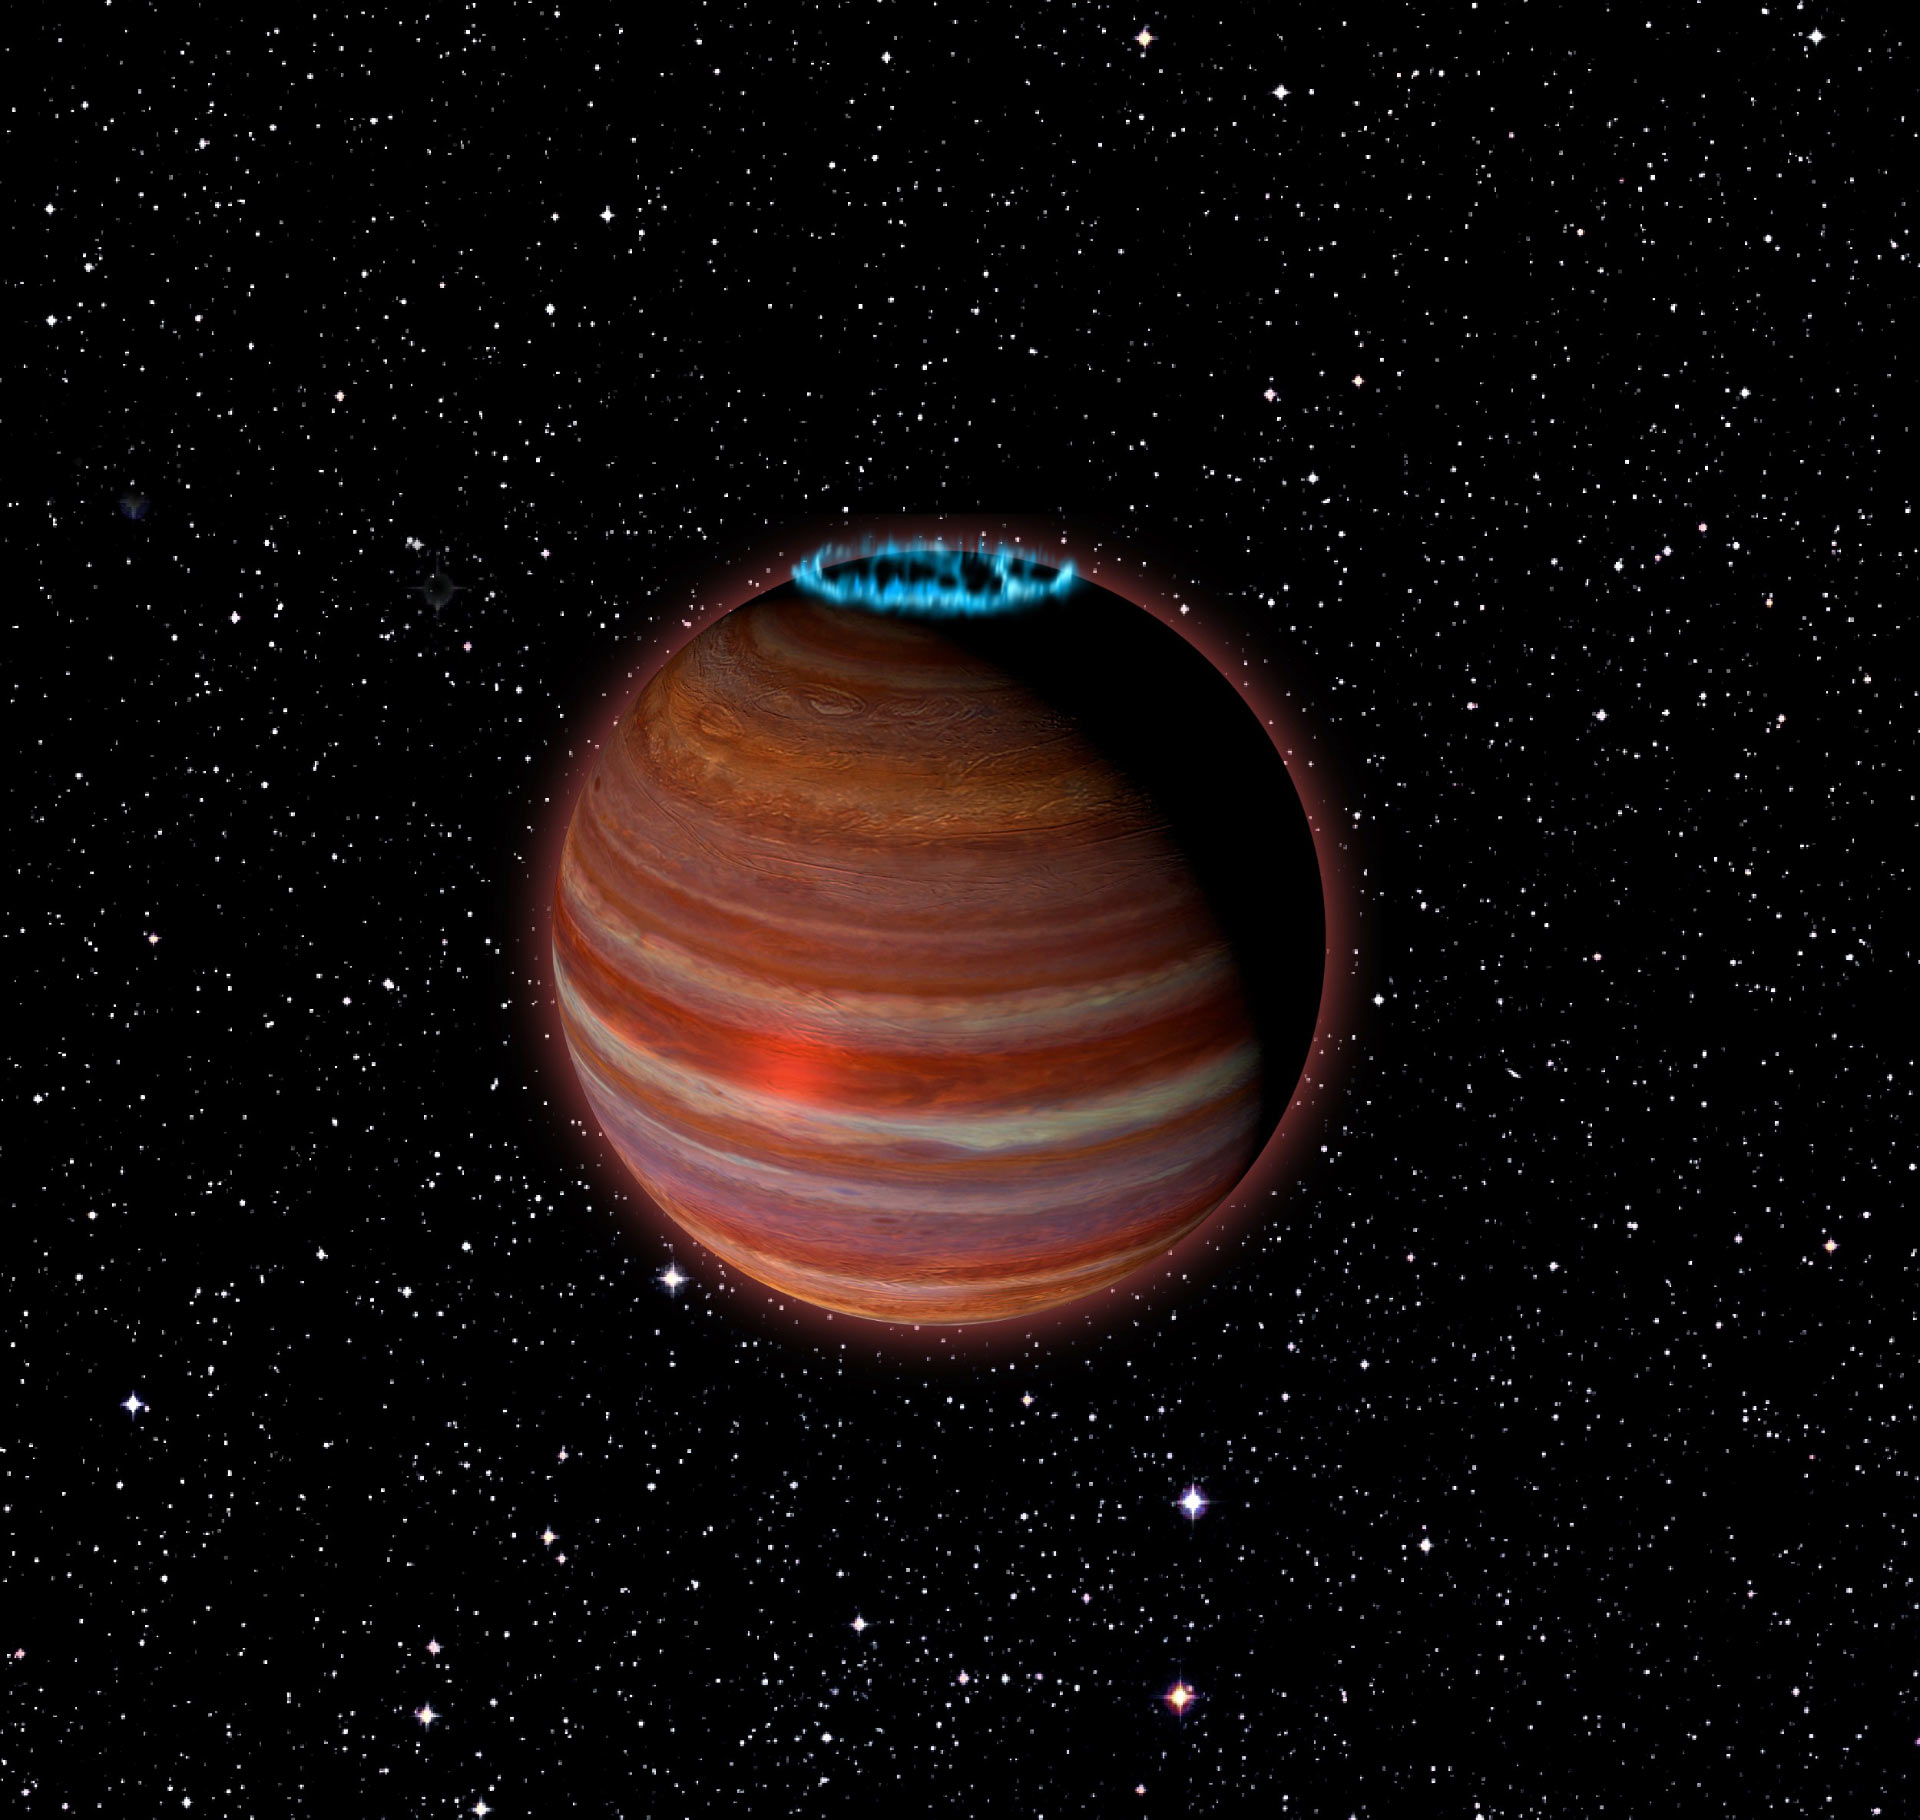 Brown dwarf or massive exoplanet detected with powerful magnetic field